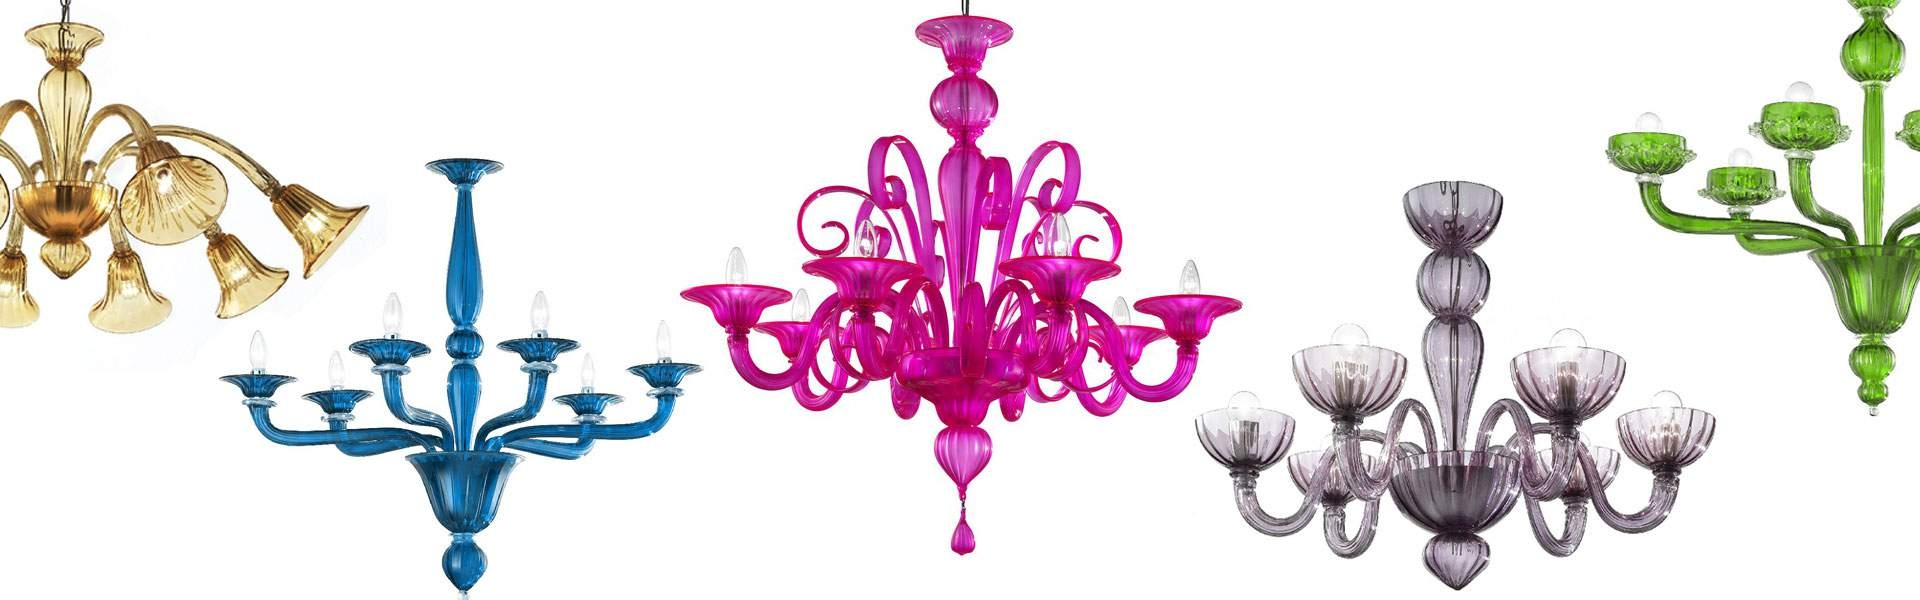 Murano Chandeliers Murano Glass Chandeliers For Sale From Italy Inside Coloured Chandeliers (Image 10 of 15)